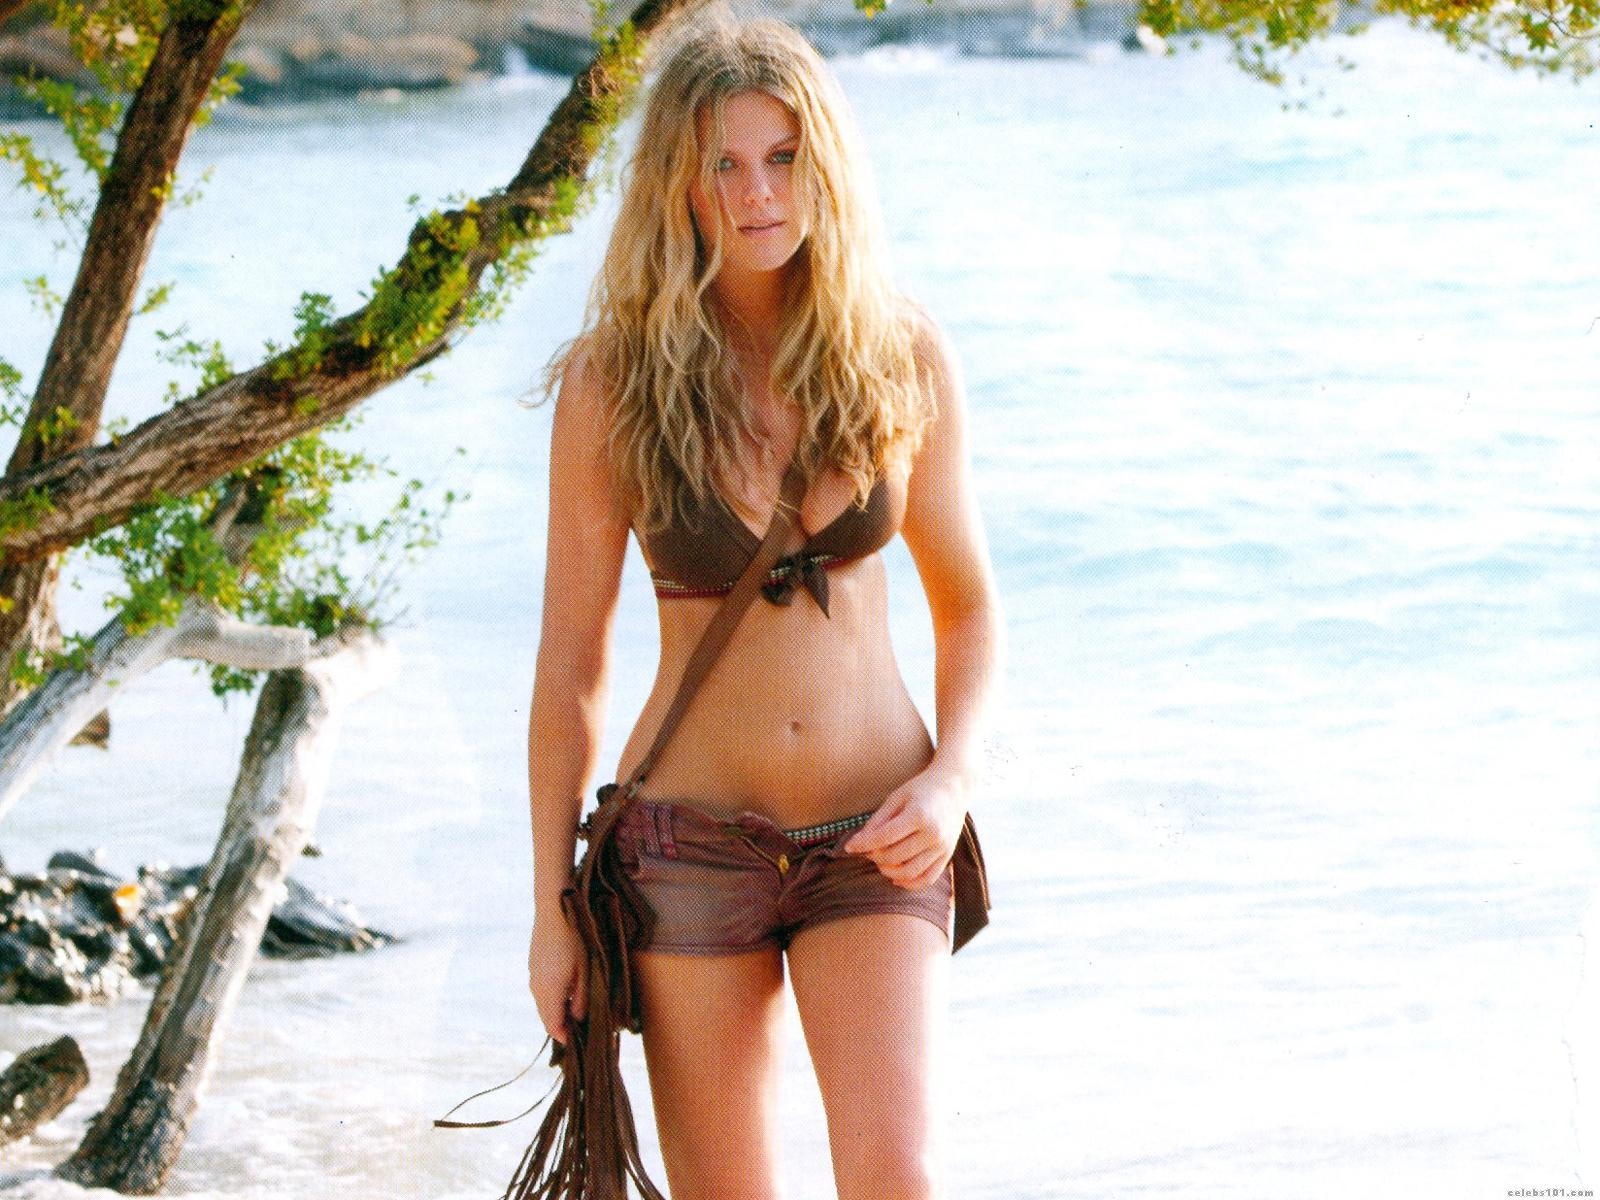 http://www.celebs101.com/wallpapers/Brooklyn_Decker/229008/Brooklyn_Decker_Wallpaper.jpg